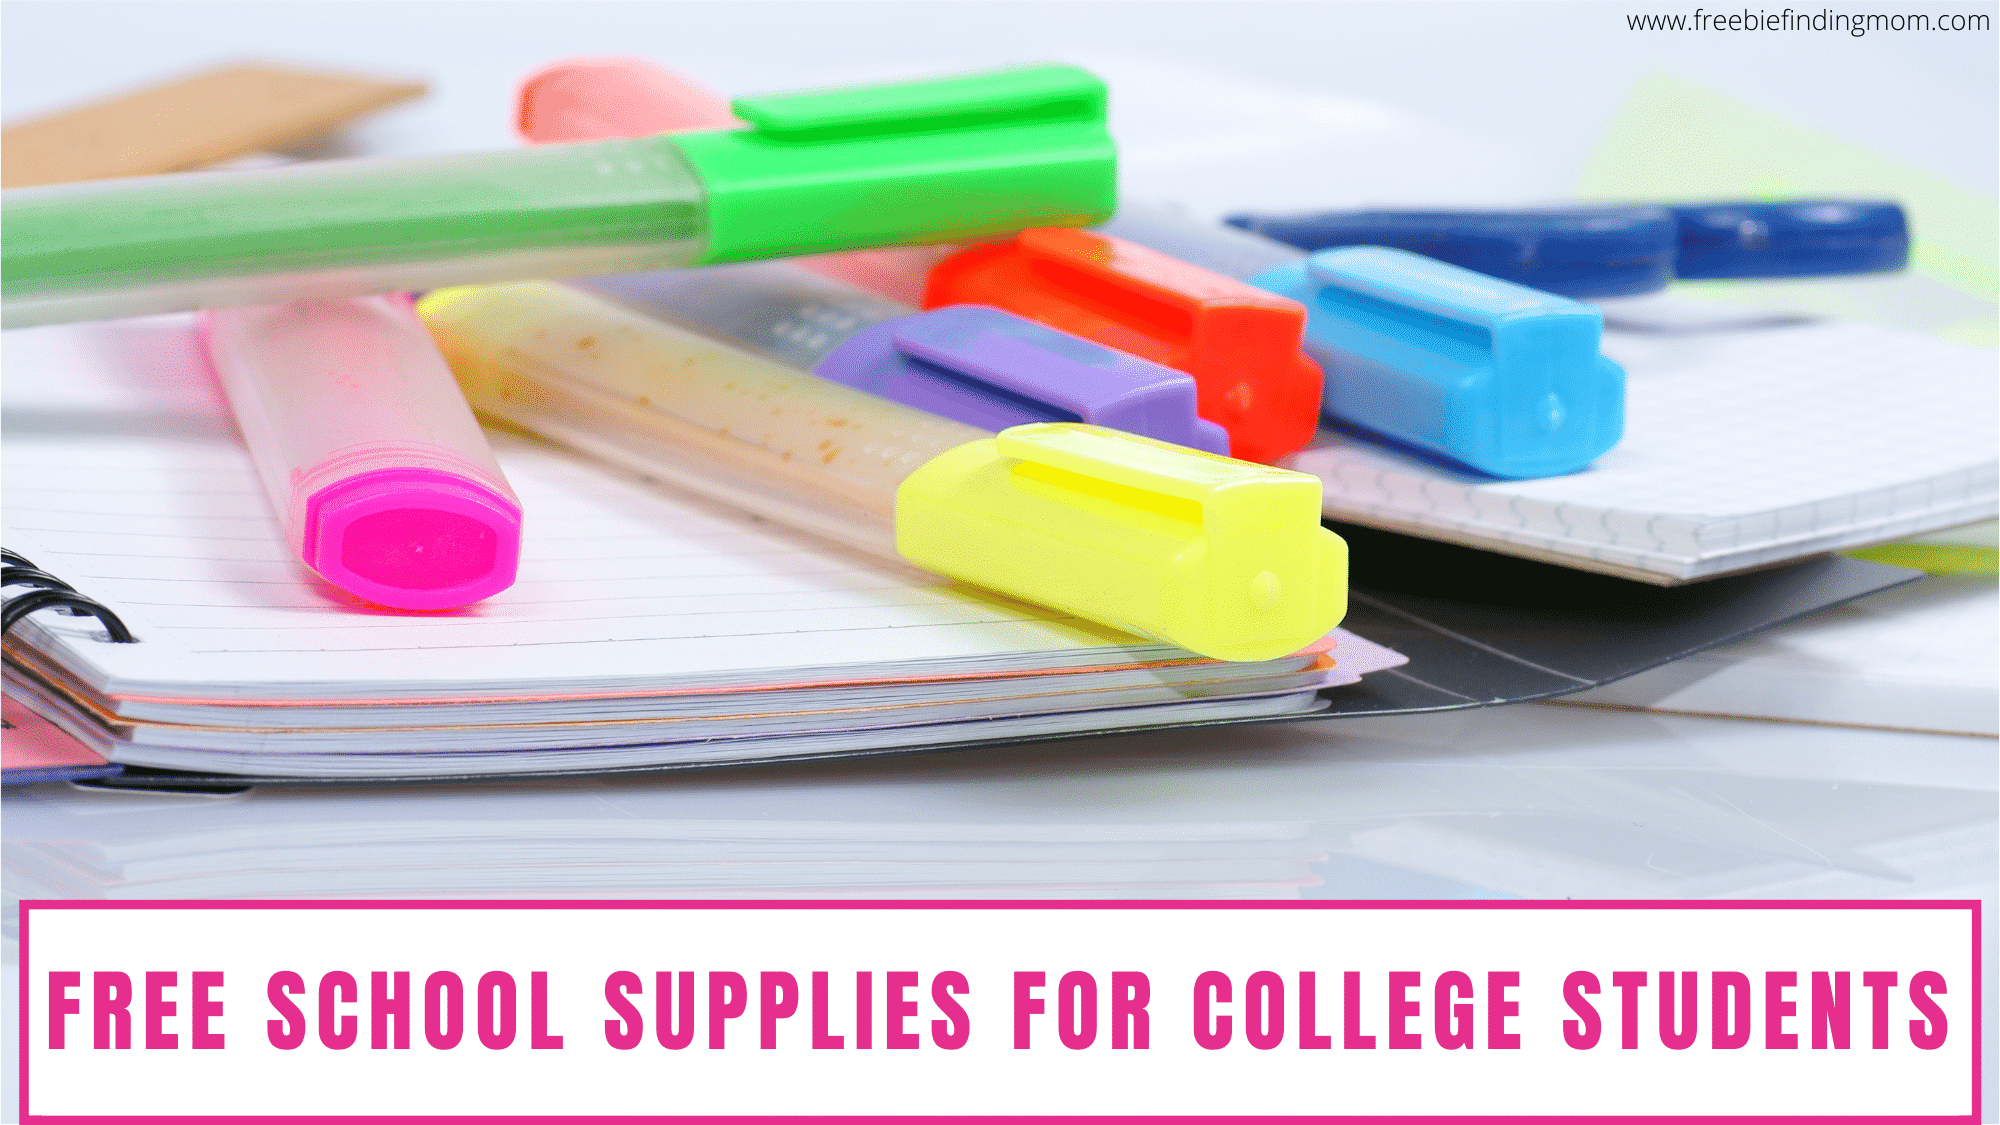 If you are a college student who is tired of feeling poor, one way you can save money is by snagging free school supplies for college students.